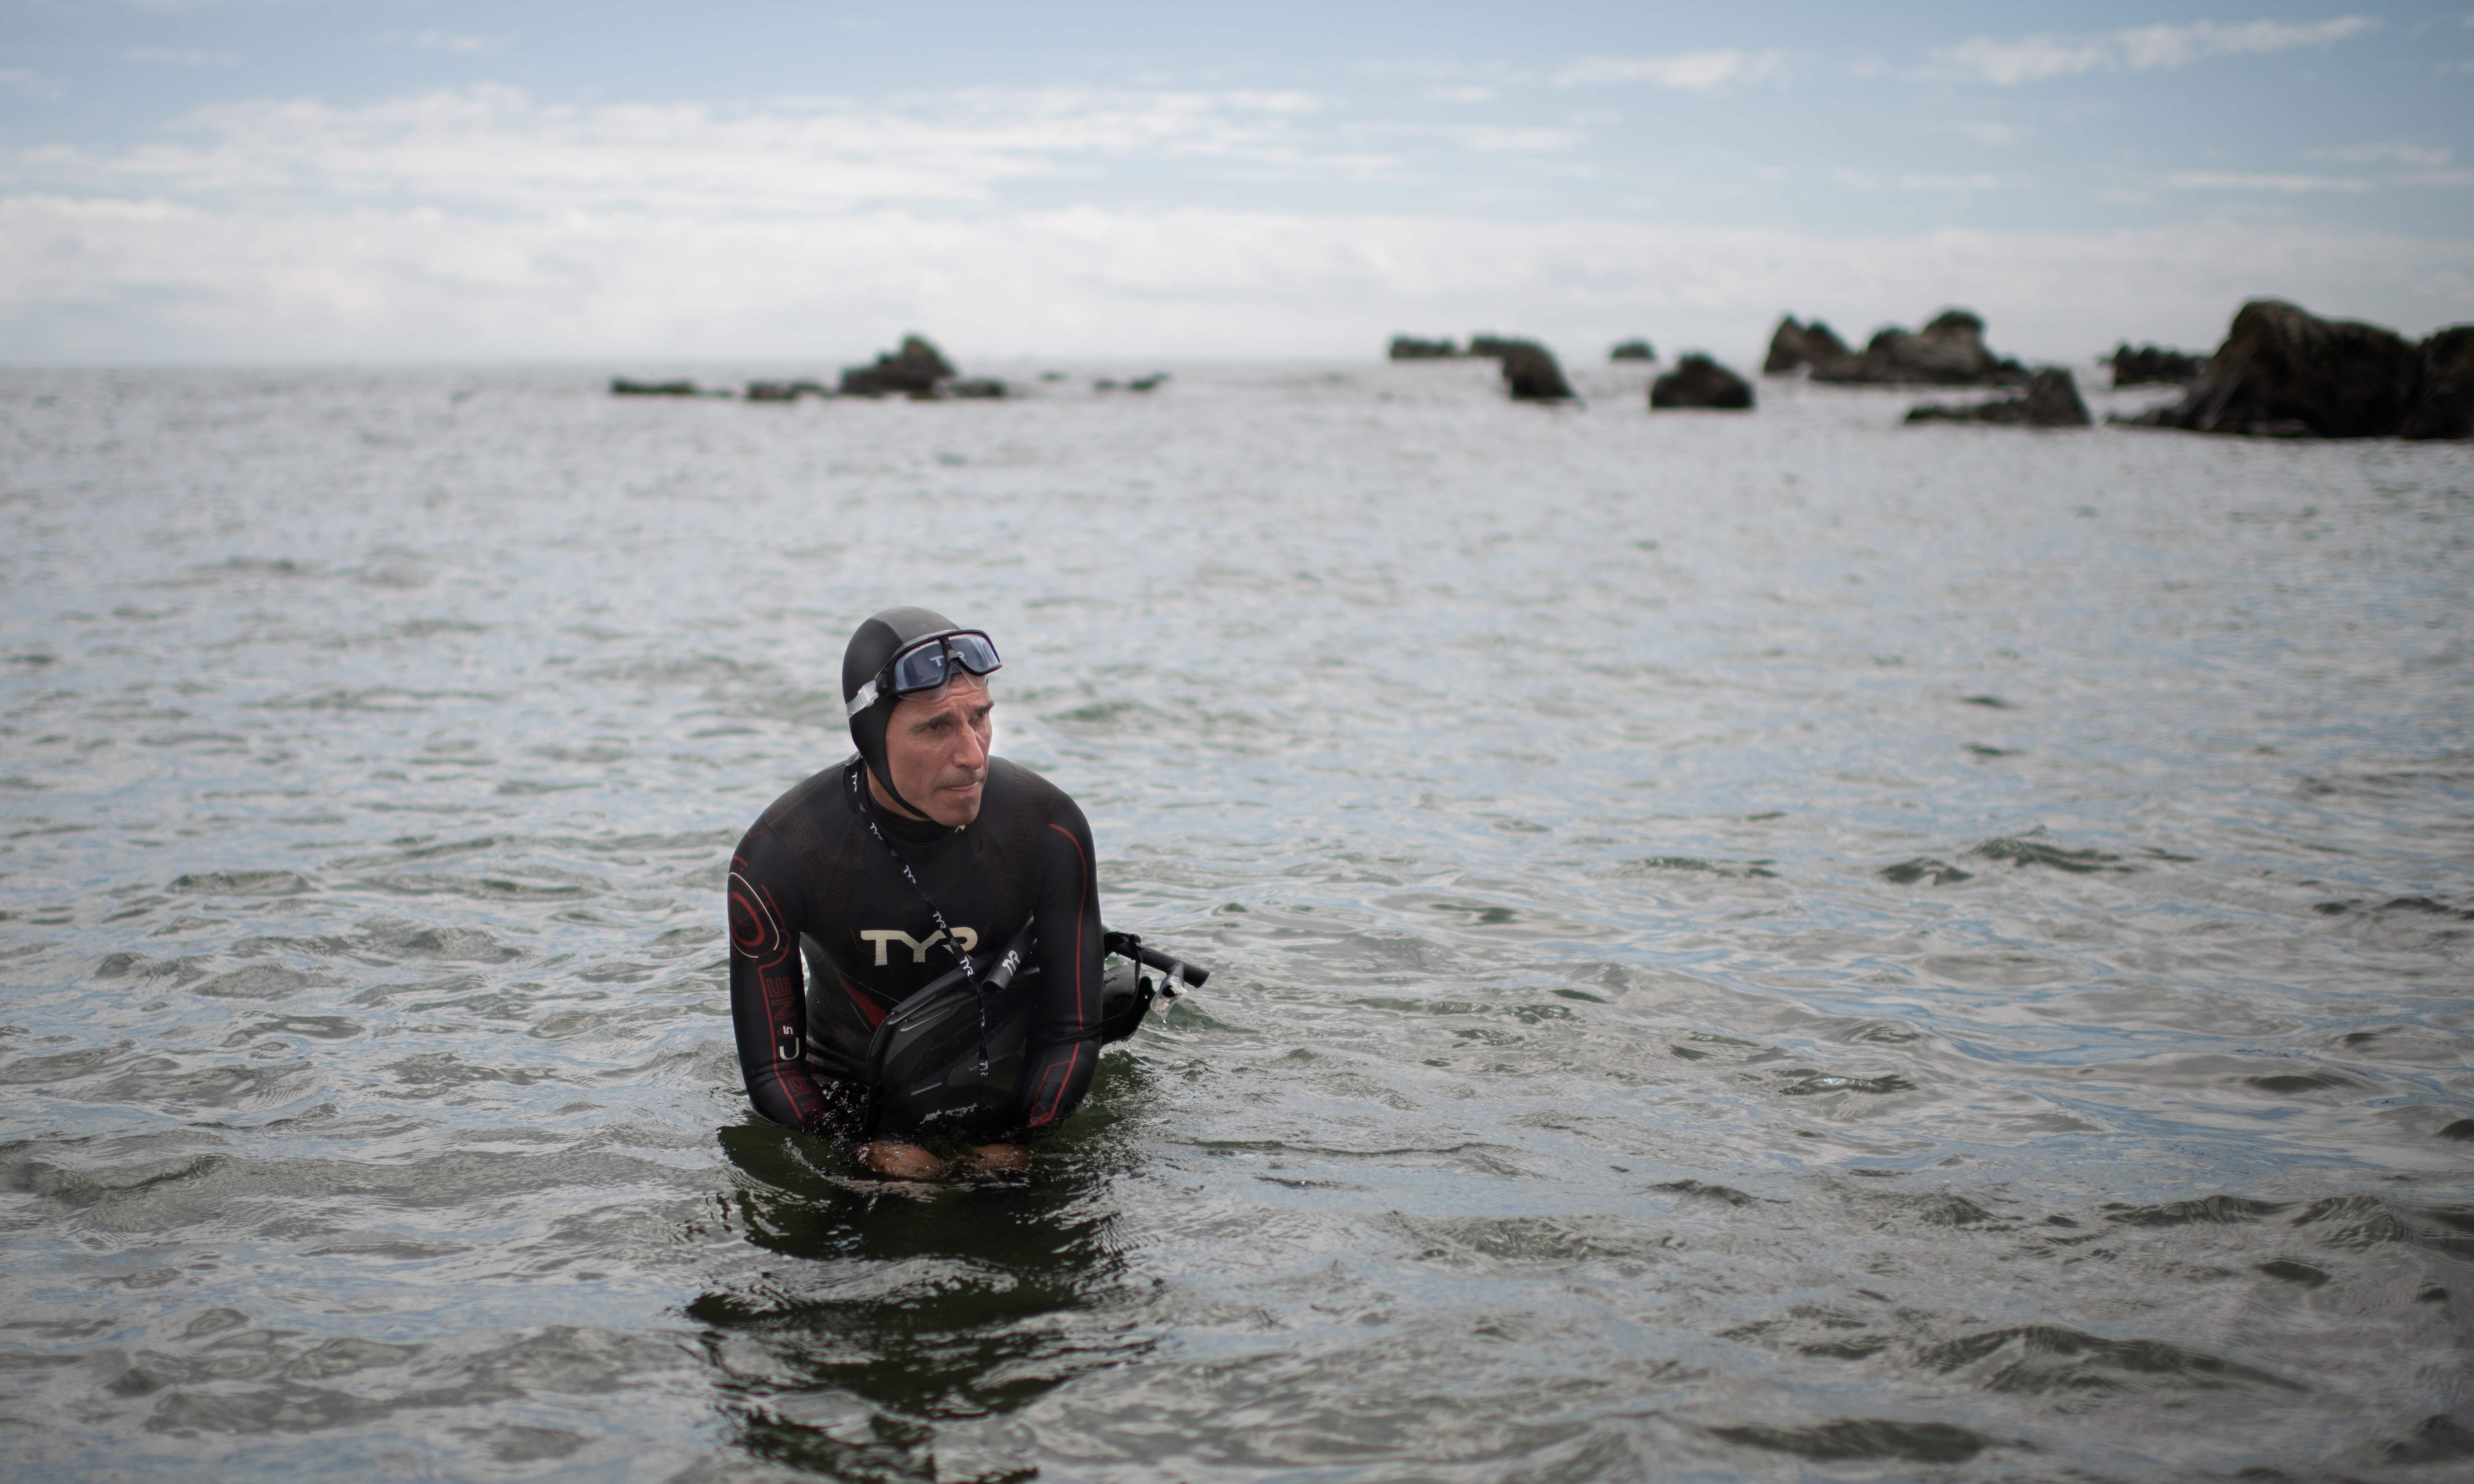 Man begins six-month swim through 'Great Pacific garbage patch'